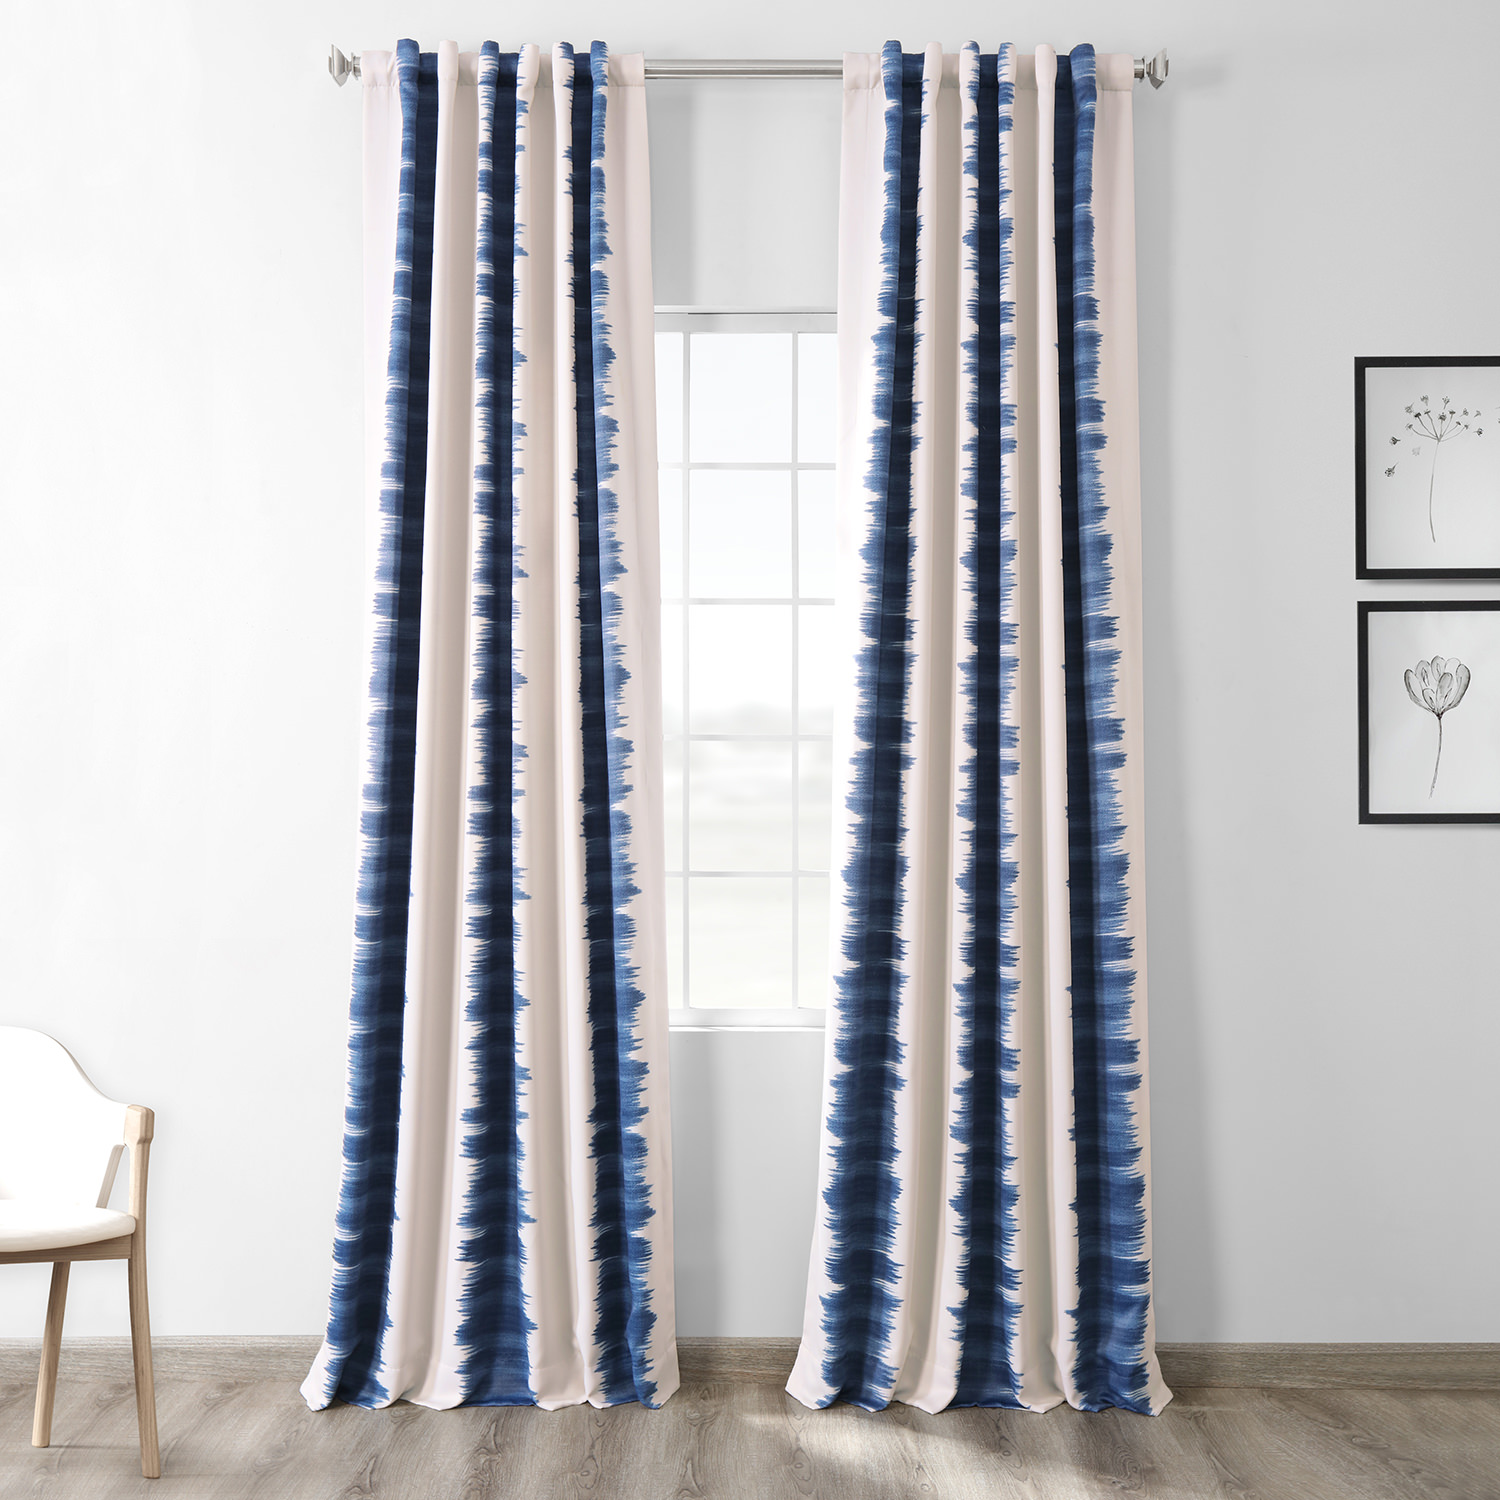 Flambe Blue Blackout Curtain